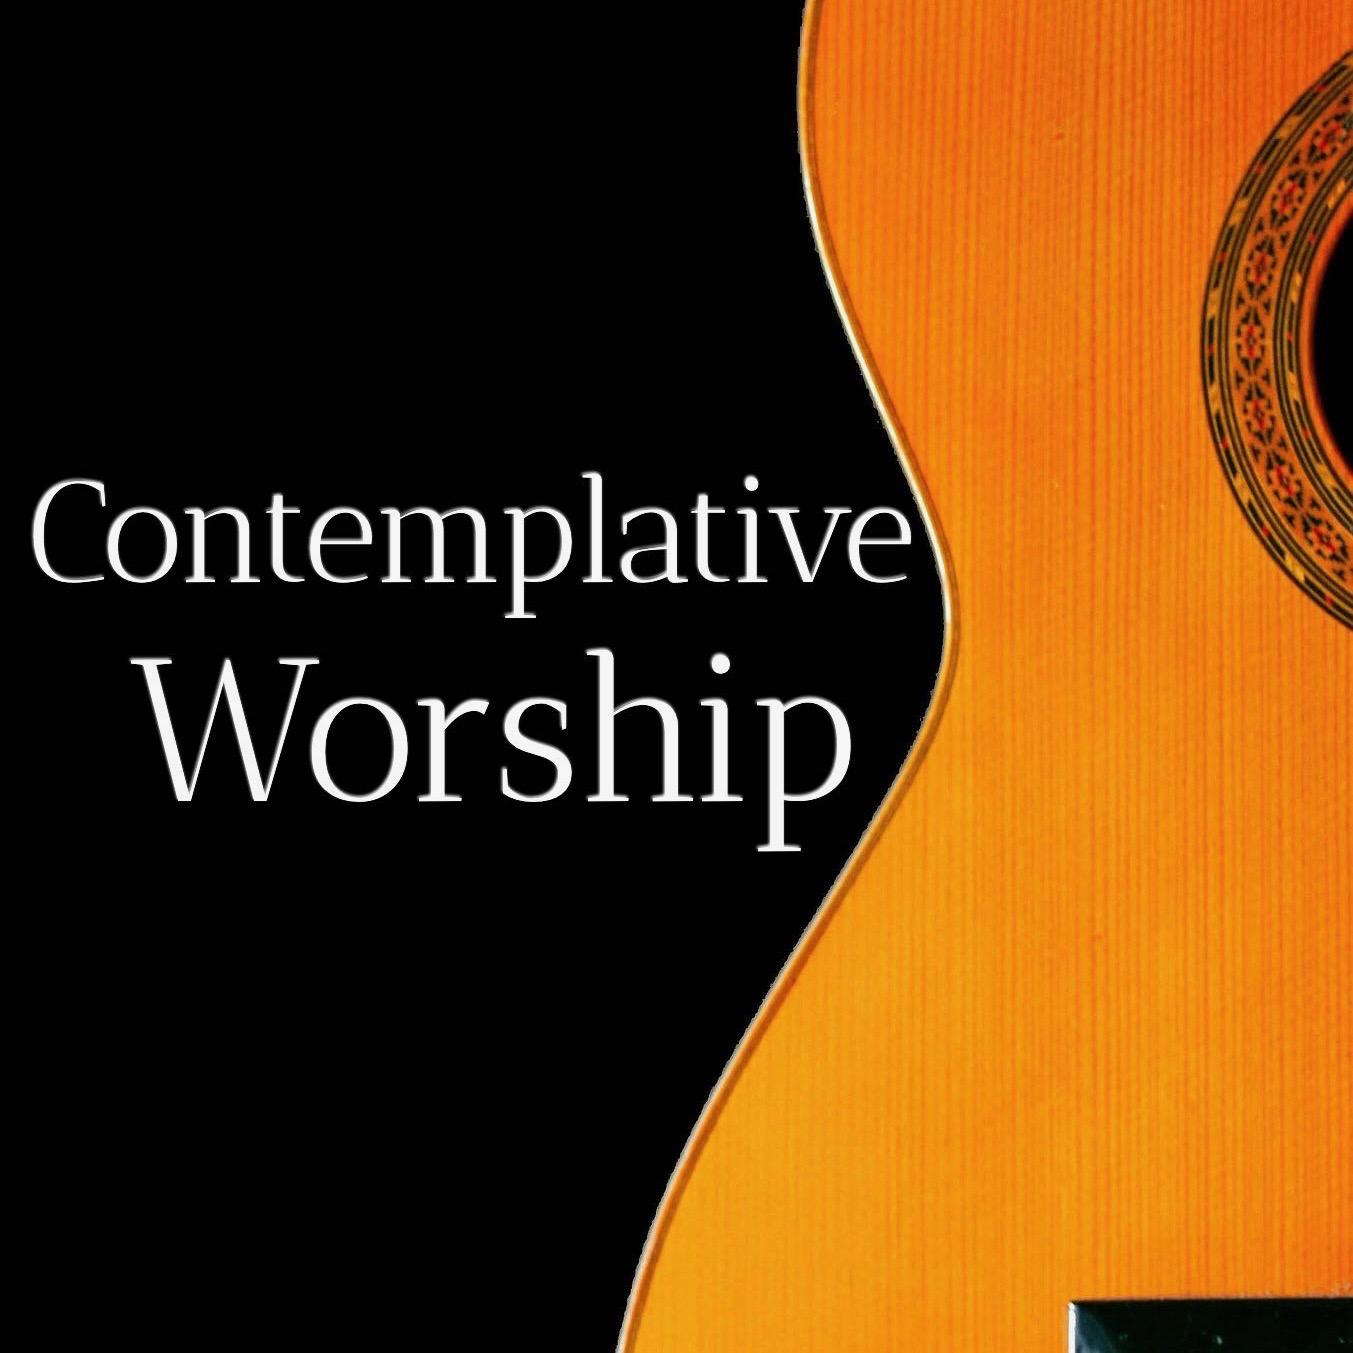 Contemplative Worship